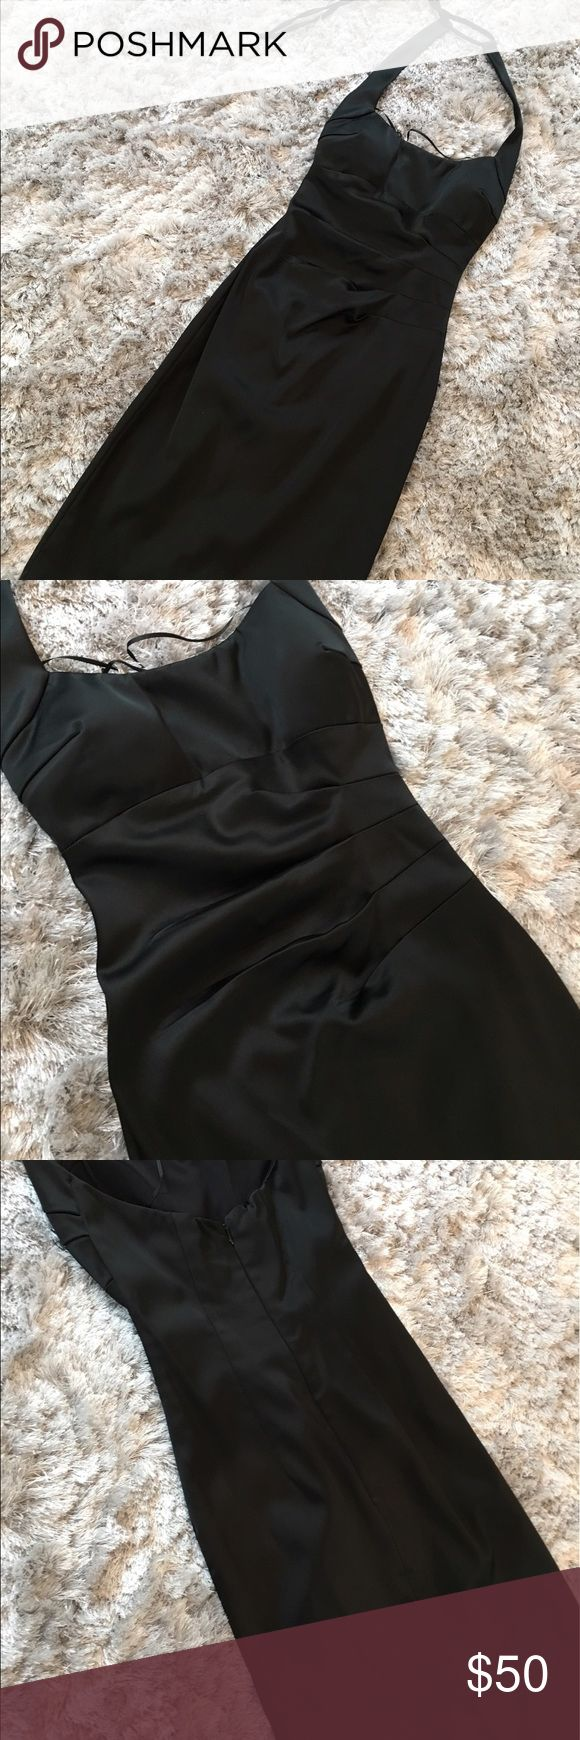 ✨Perfect cocktail 🍸dress ✨ Uber classy and sexy cocktail dress. Perfect for a wedding or a black tie event. Halter style with adjustable tie straps for that perfect fit. Scrunch waste to accent the waste. Fitted but not tight. Thick silky material. Zipper back Cache Dresses Midi